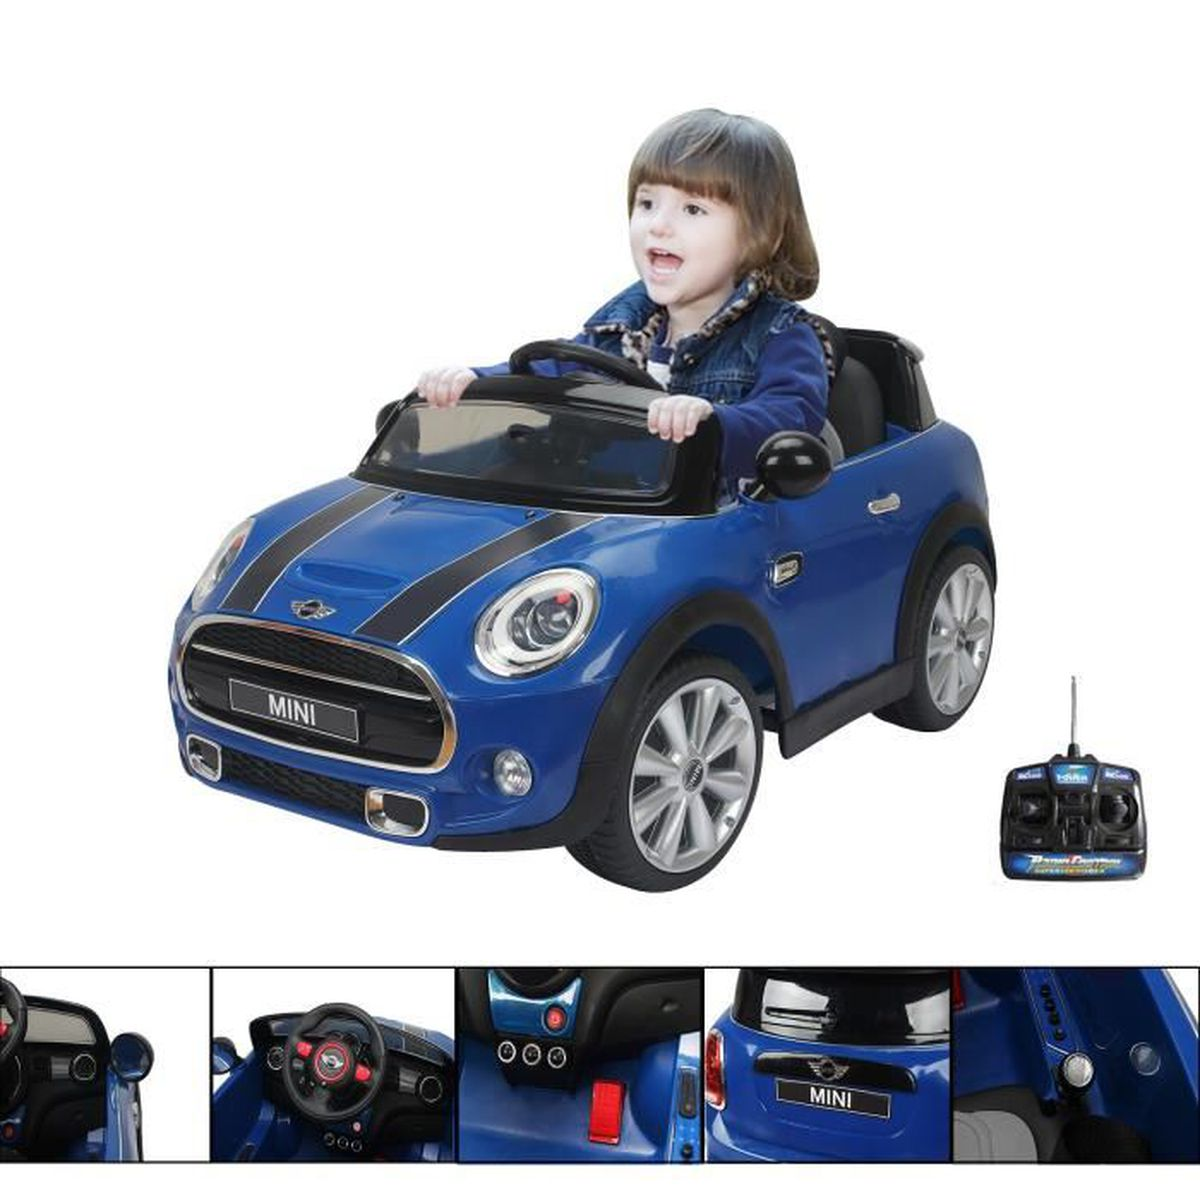 voiture electrique enfant mini cooper achat vente jeux. Black Bedroom Furniture Sets. Home Design Ideas